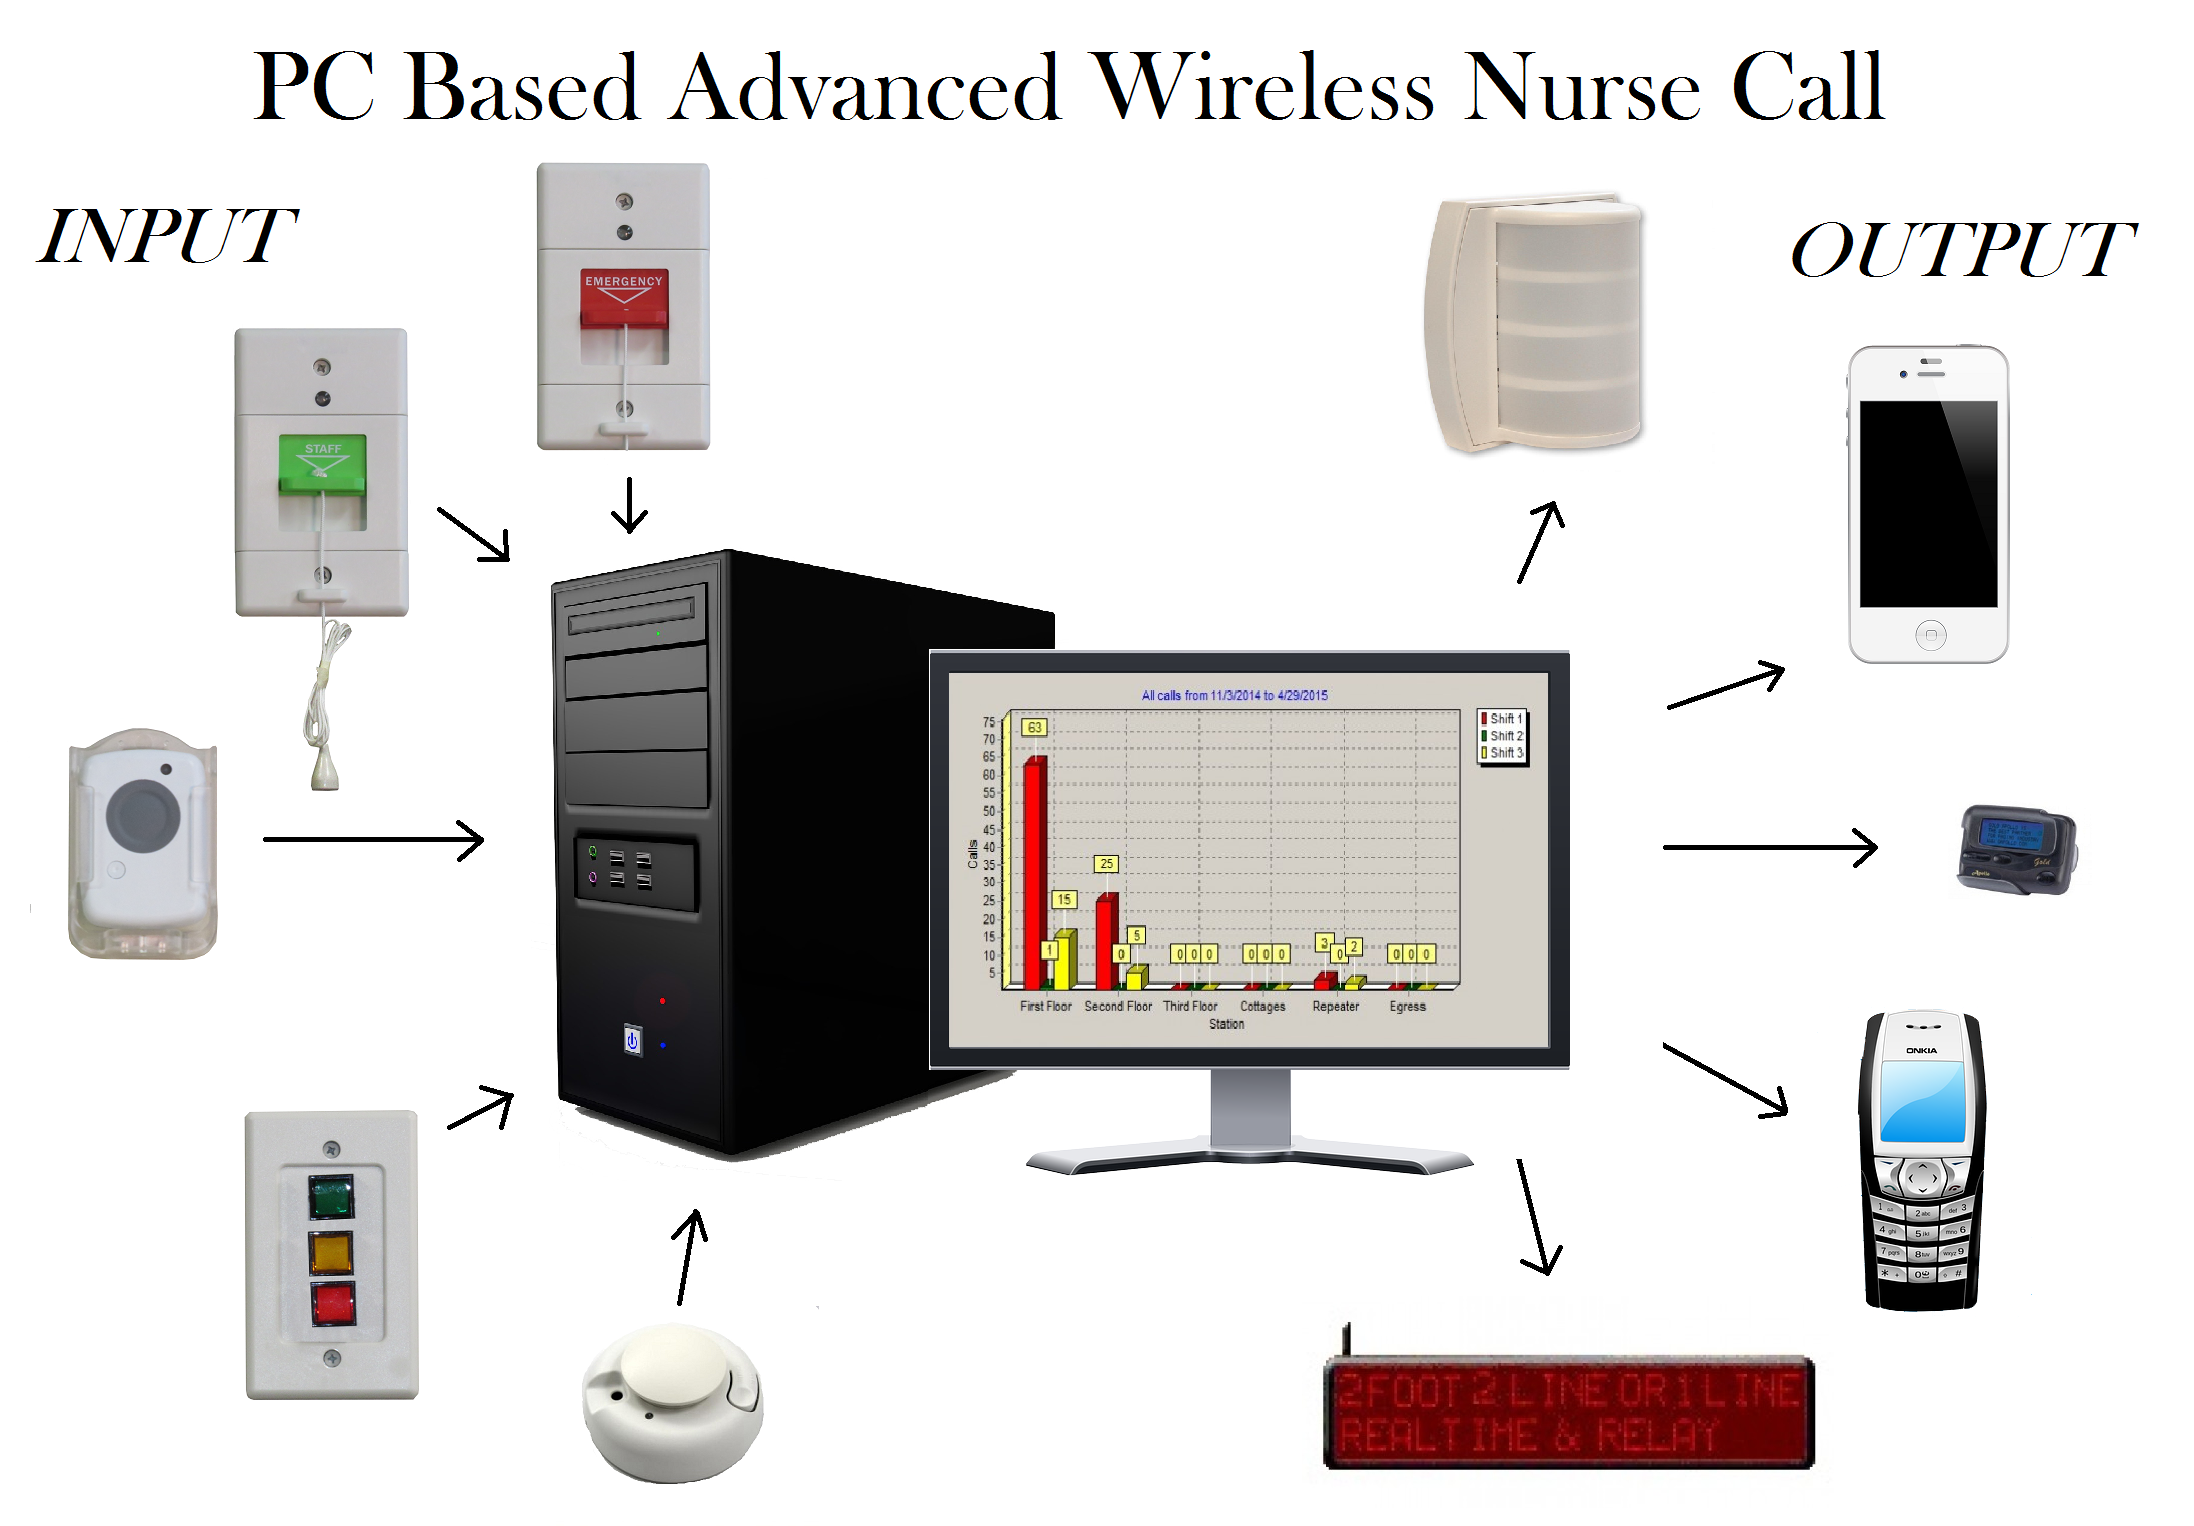 PC based advanced wireless nurse call system